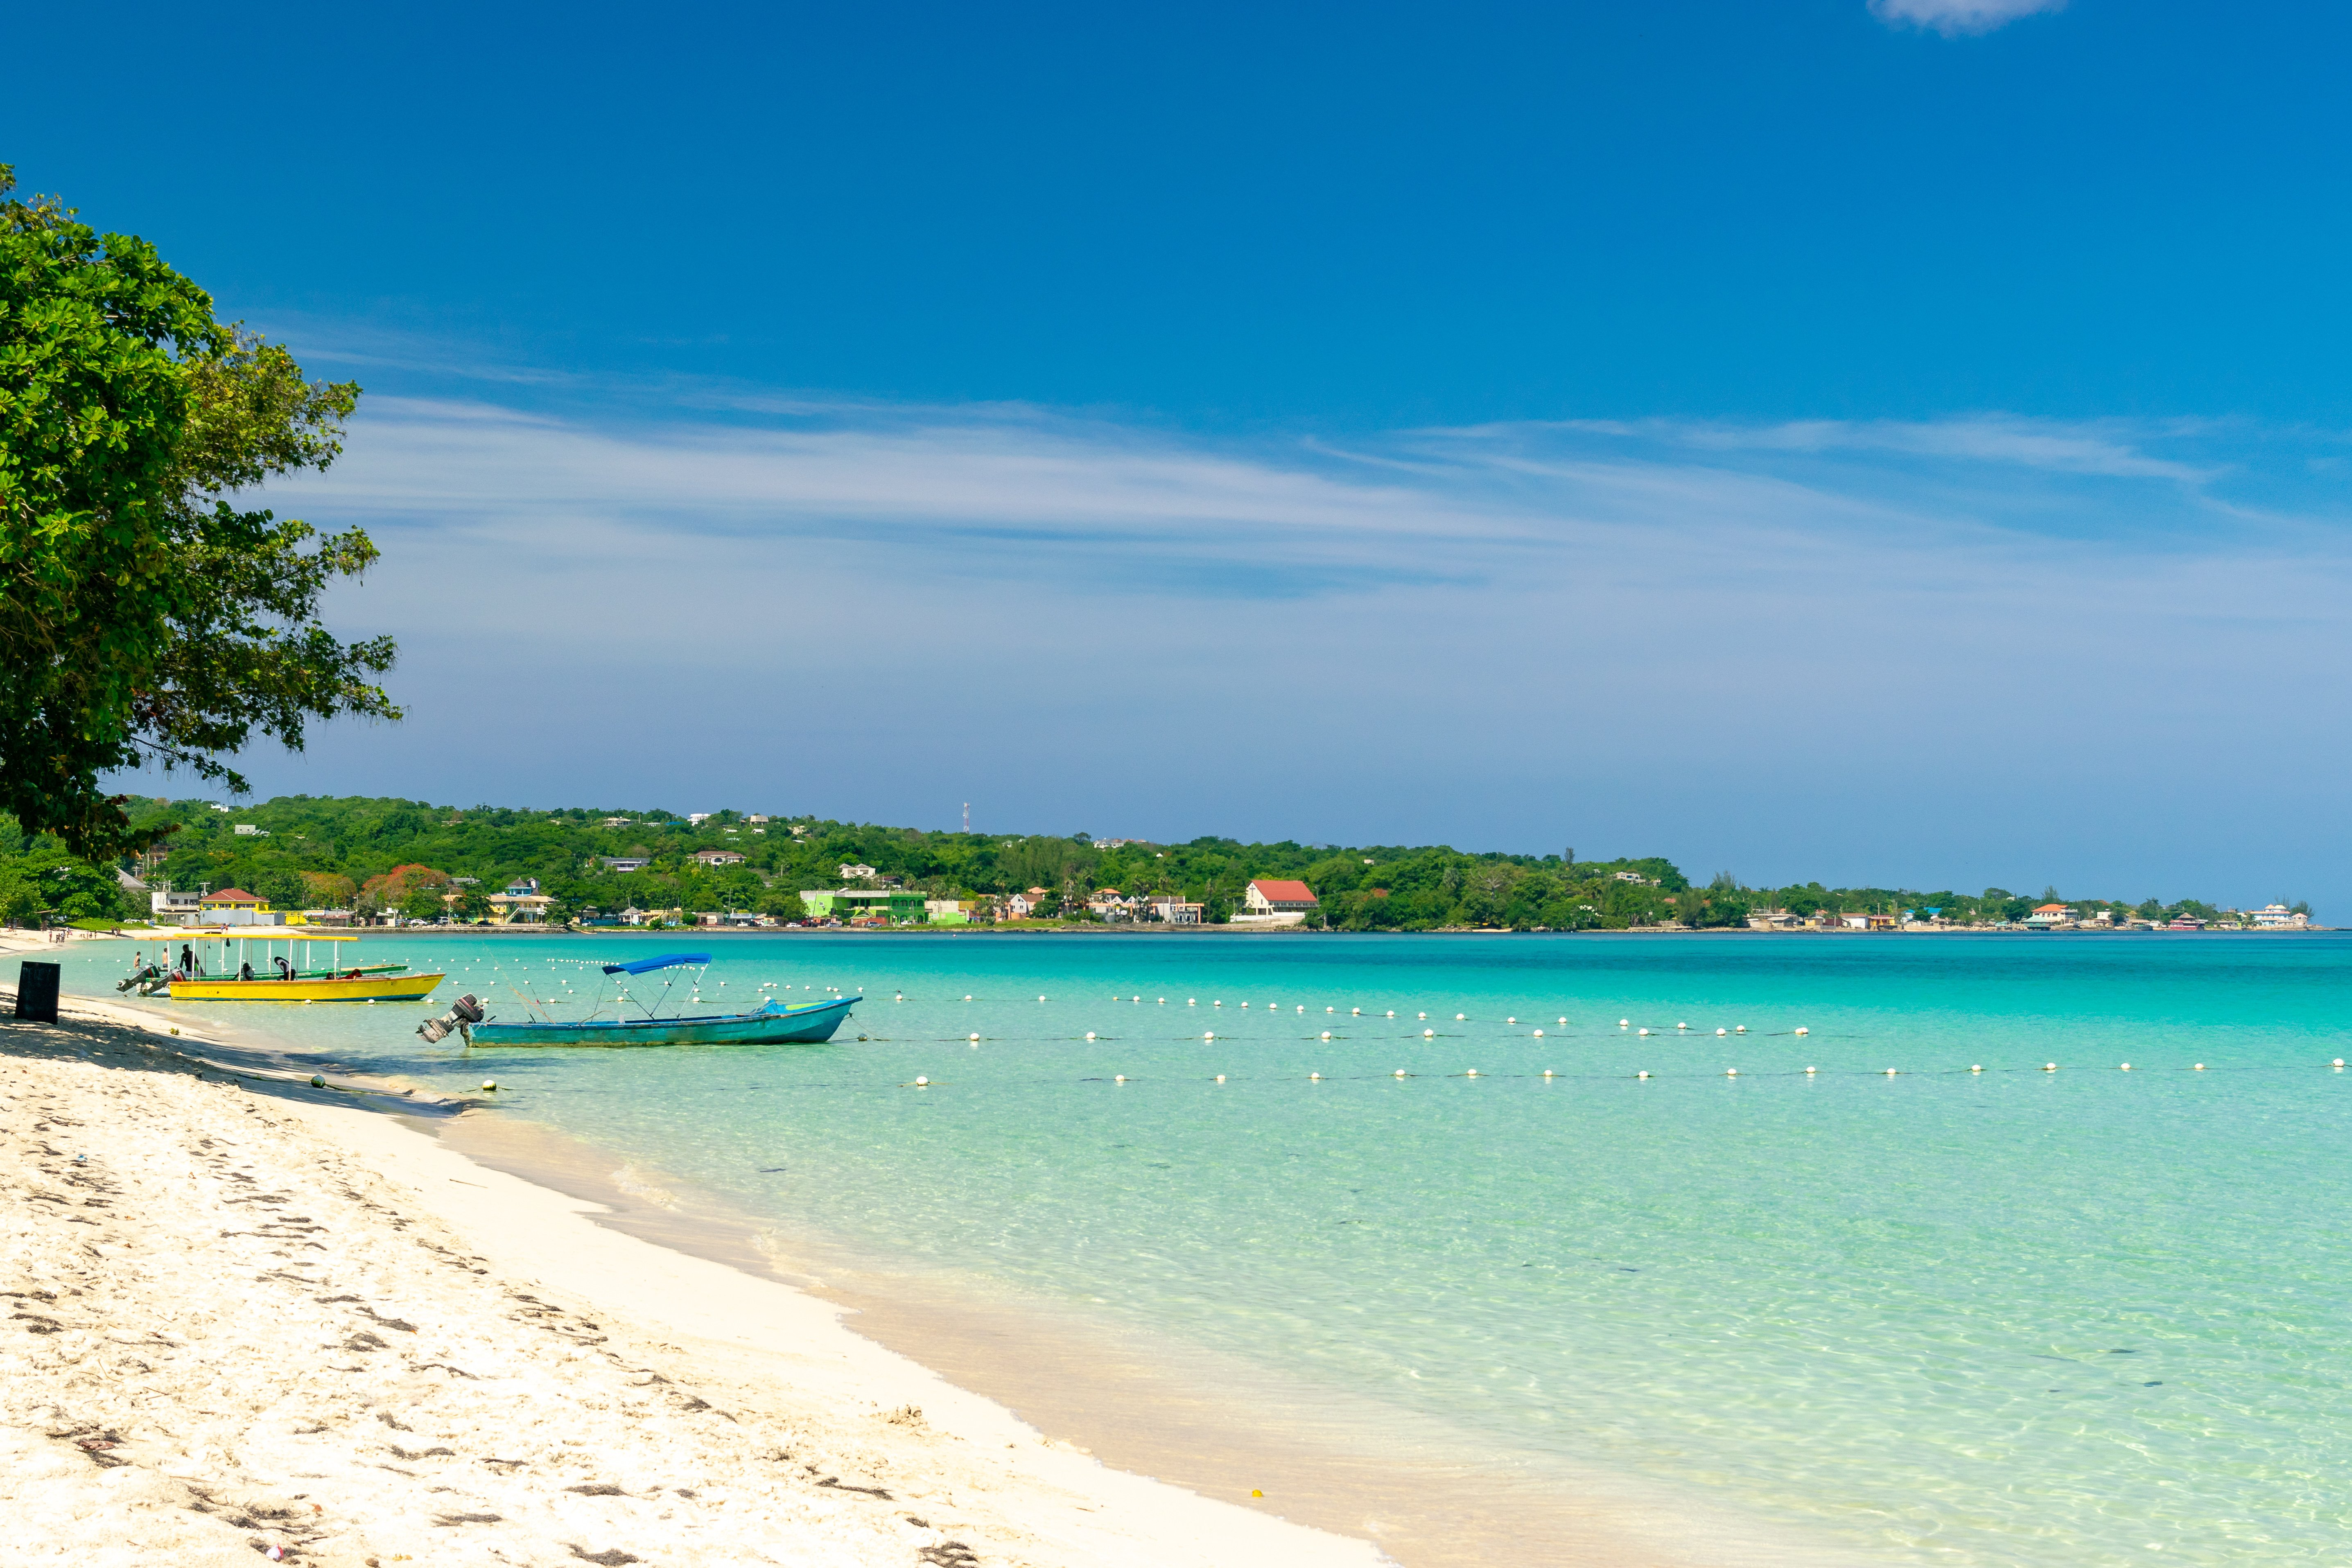 Colorful boats docked in the sand of Seven Mile beach in Jamaica, bordered by stunning turquoise water.